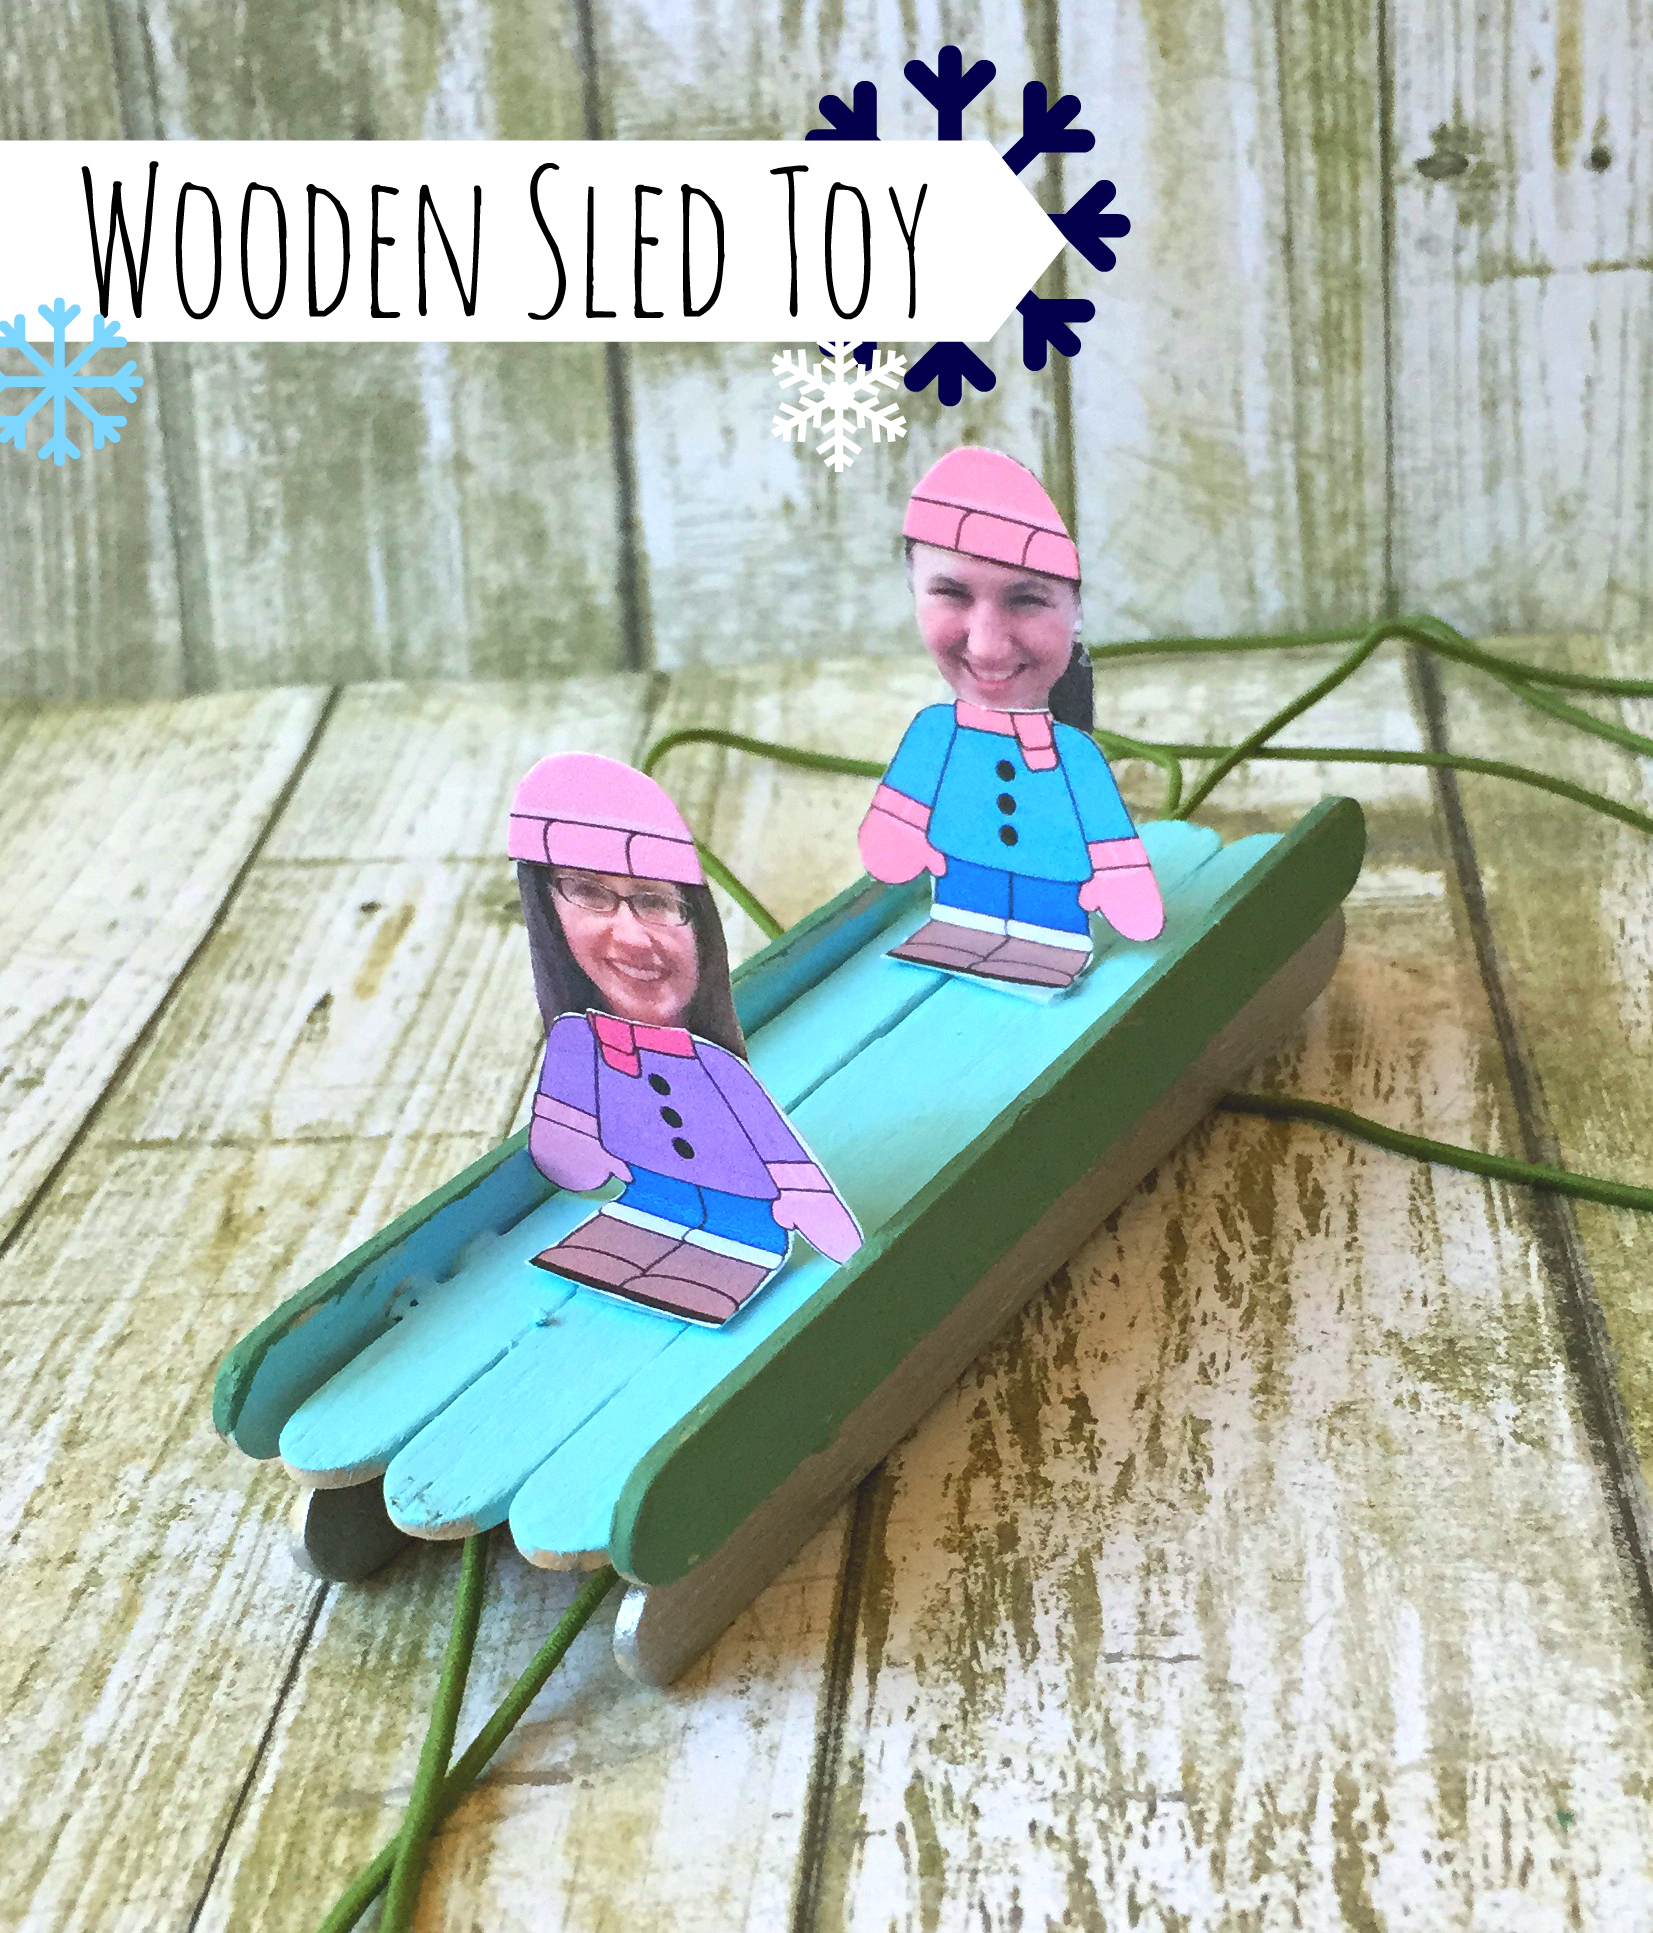 Wooden Sled Toy